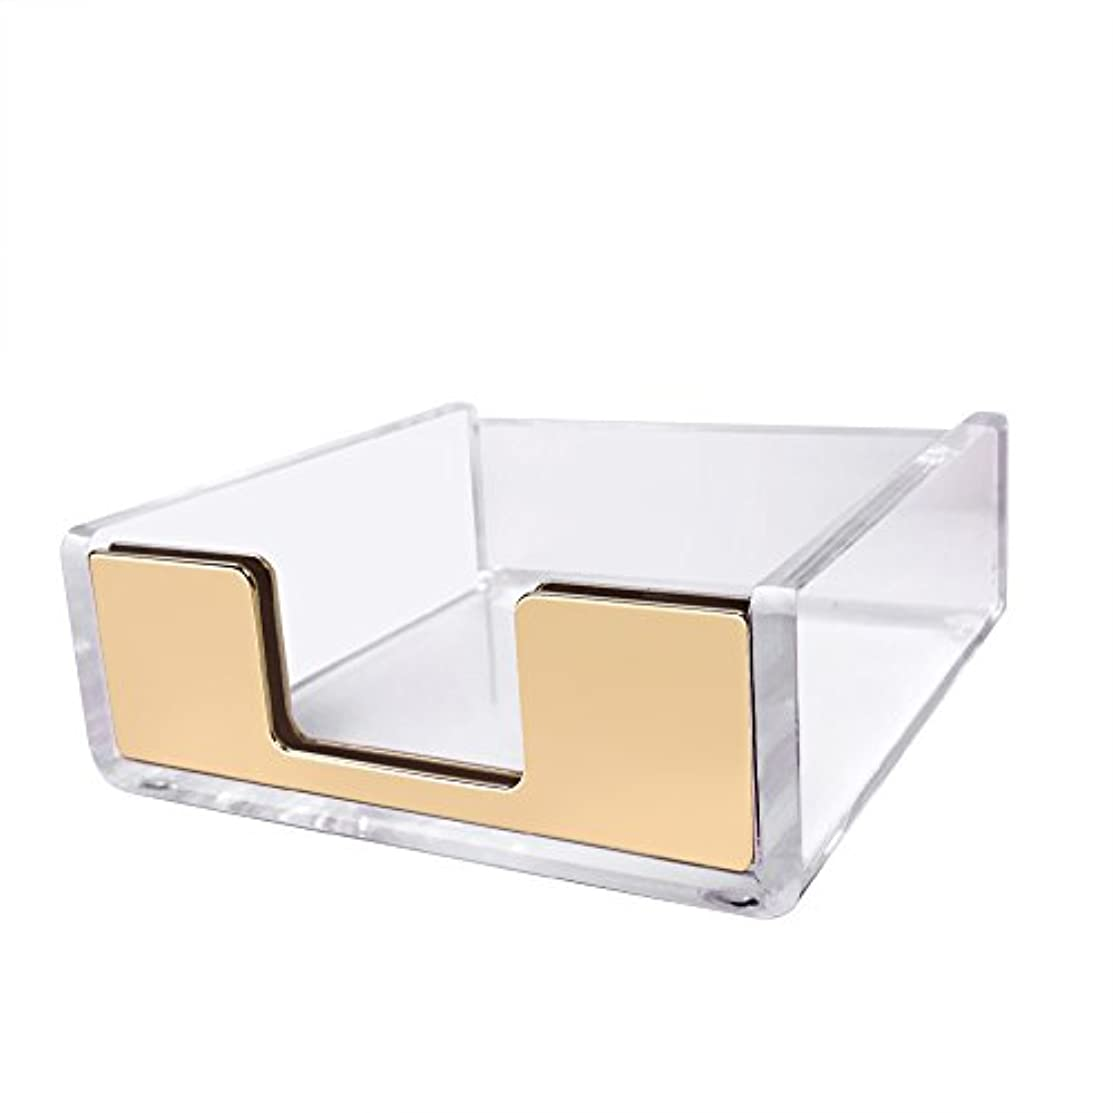 UNIQOOO 5mm Super Thick Clear Acrylic Memo Paper Pads Notes Cards Box Holder Case with Gold Finished, A Classic Modern Design to Brighten Up Your Desk, Elegant Office Accessory